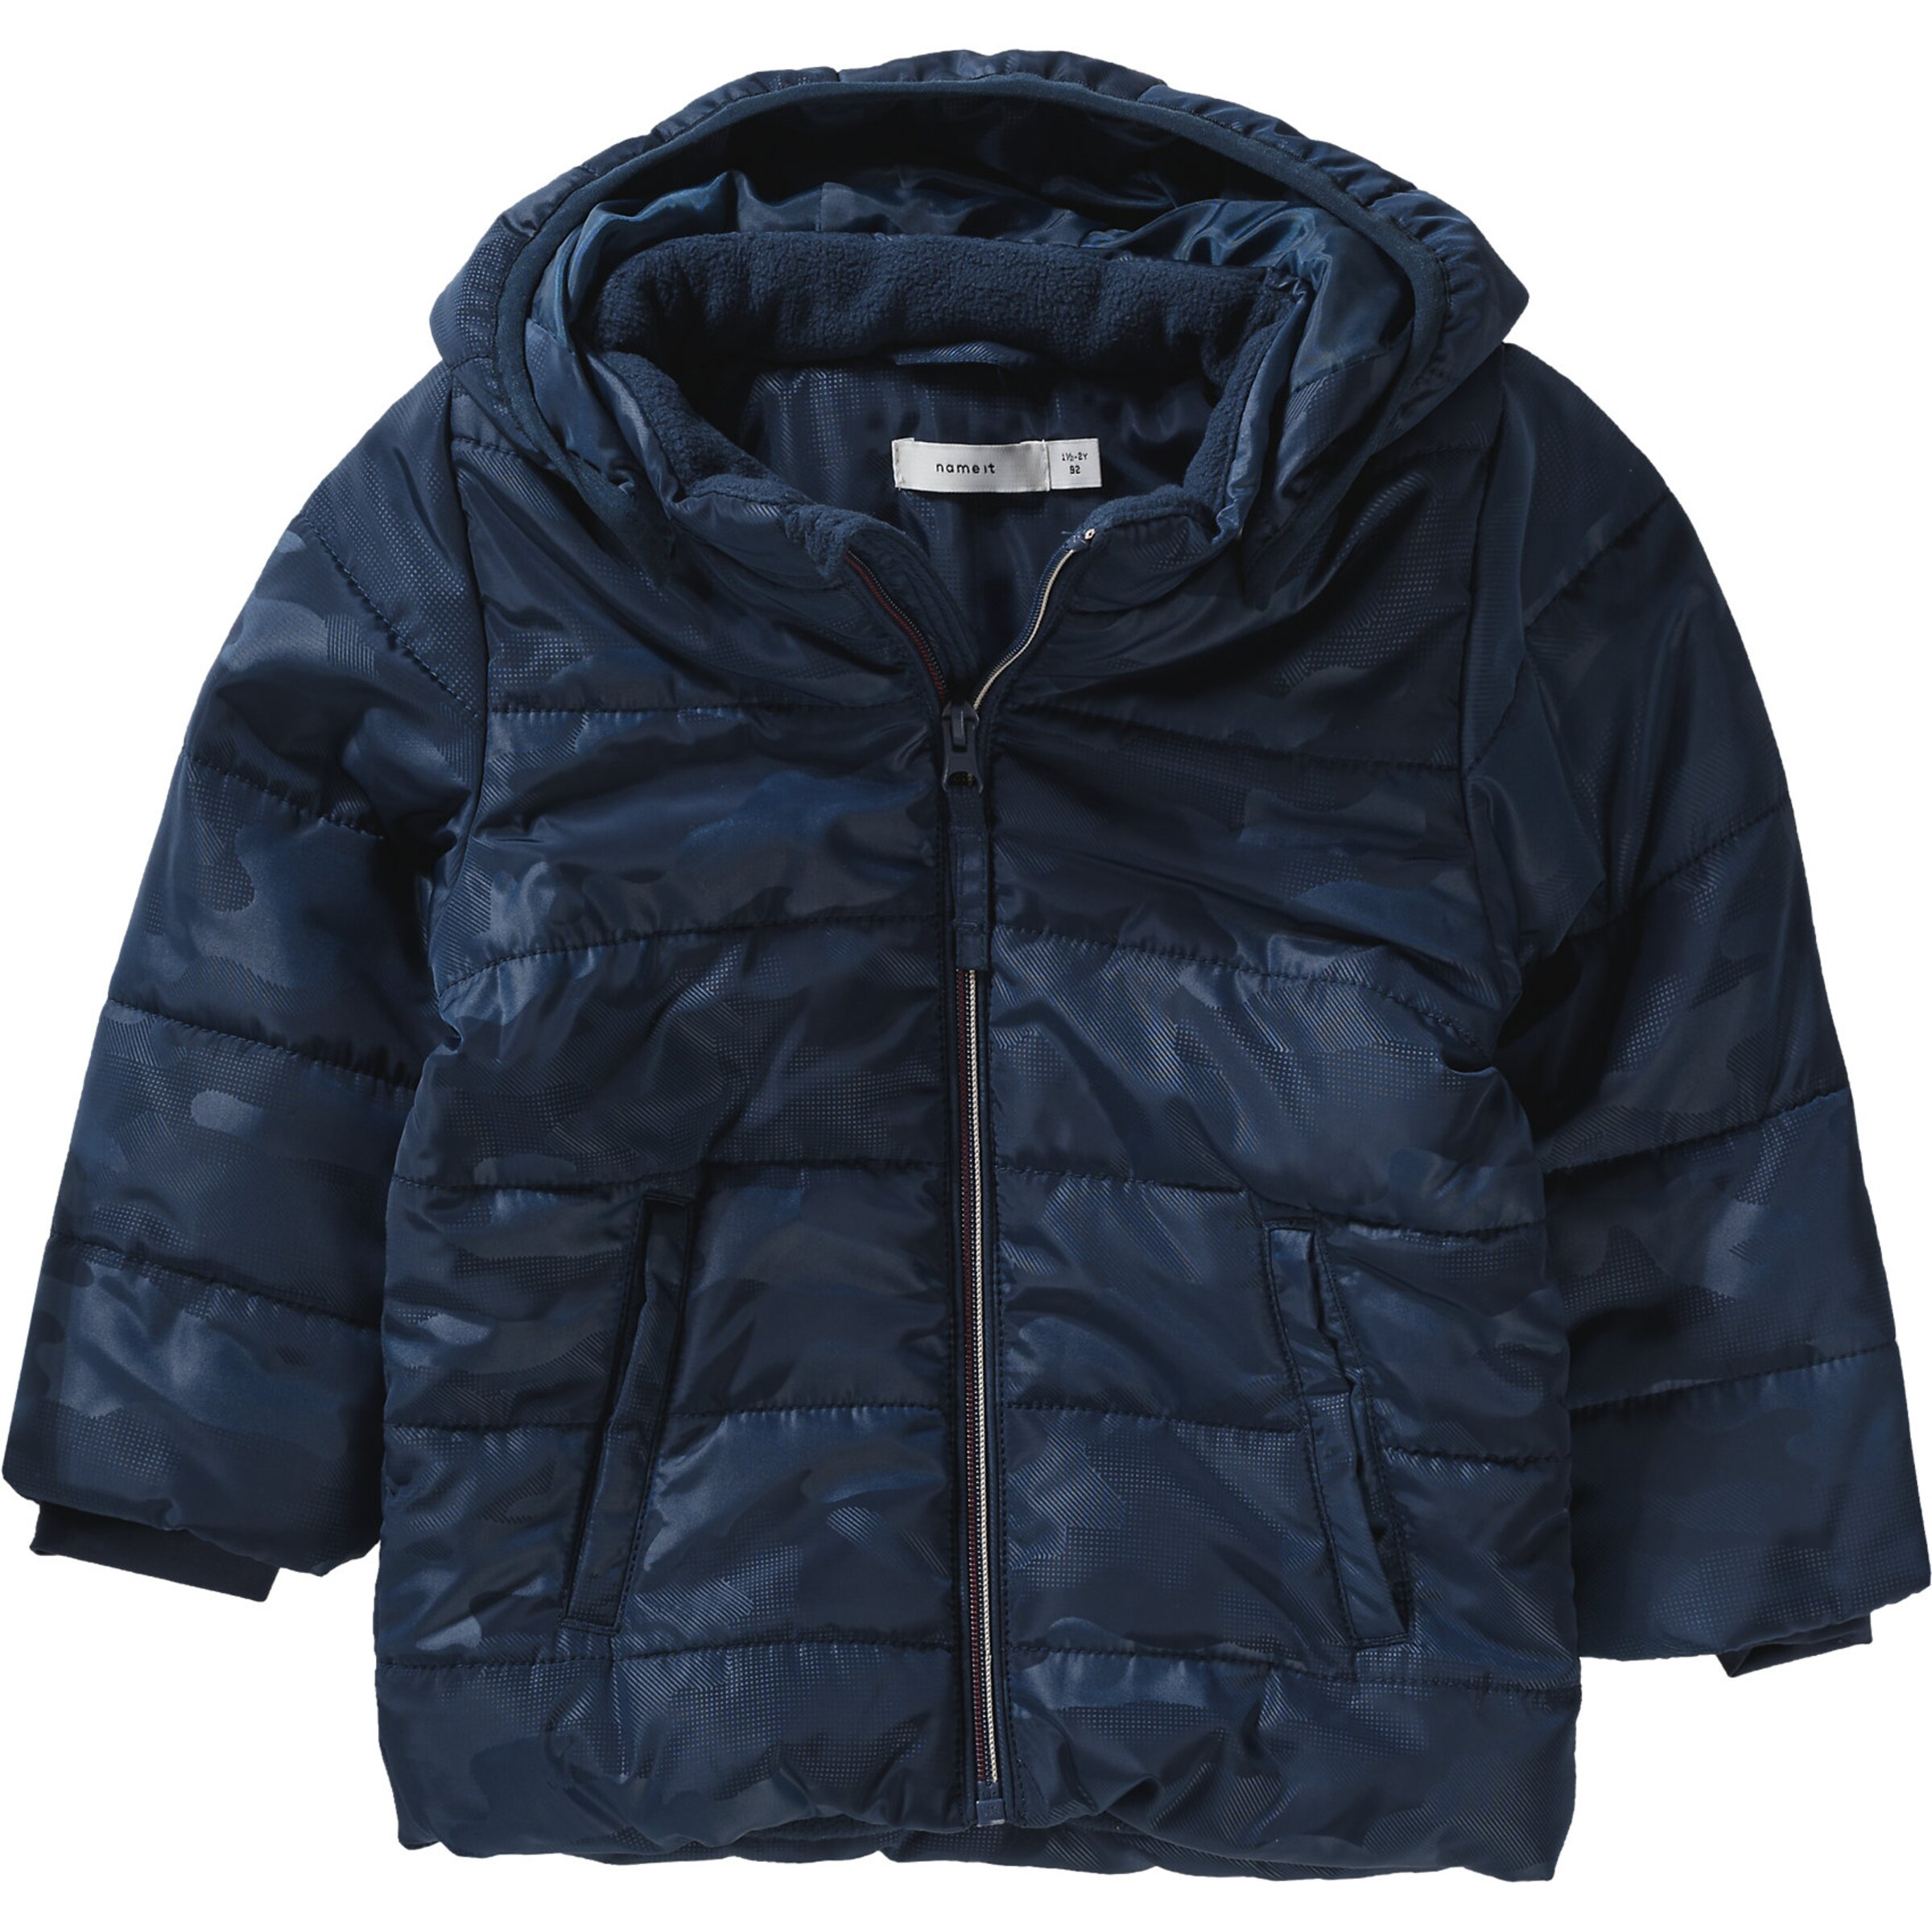 Kinder Name It Kleid In Blau Kujuux Name It Winterjacke Nitmit Für Jungen In Blau About You